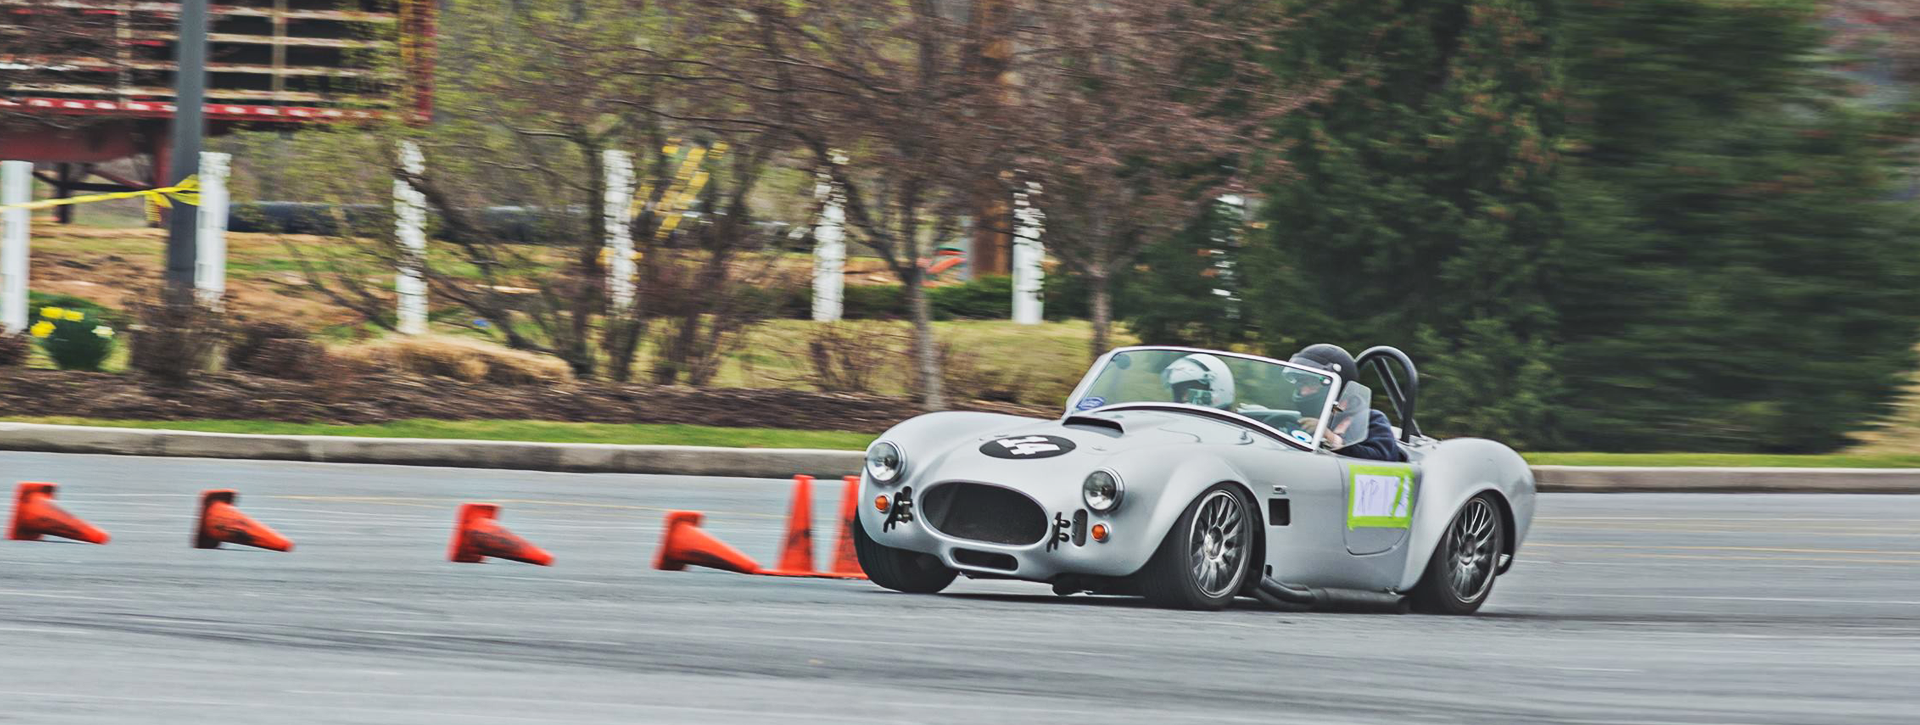 <p>Name: Mark Dougherty From: Hummlestown, PA Runs: Mark currently runs Autocross and Hill Climb events. He plans to start running Rallycross this year Drives: Mark runs a 1965 Cobra in XP. He has a 1990 Escort ready for upcoming Rallycross events Member Since: The early 1990s You may know Mark [&hellip;]</p>